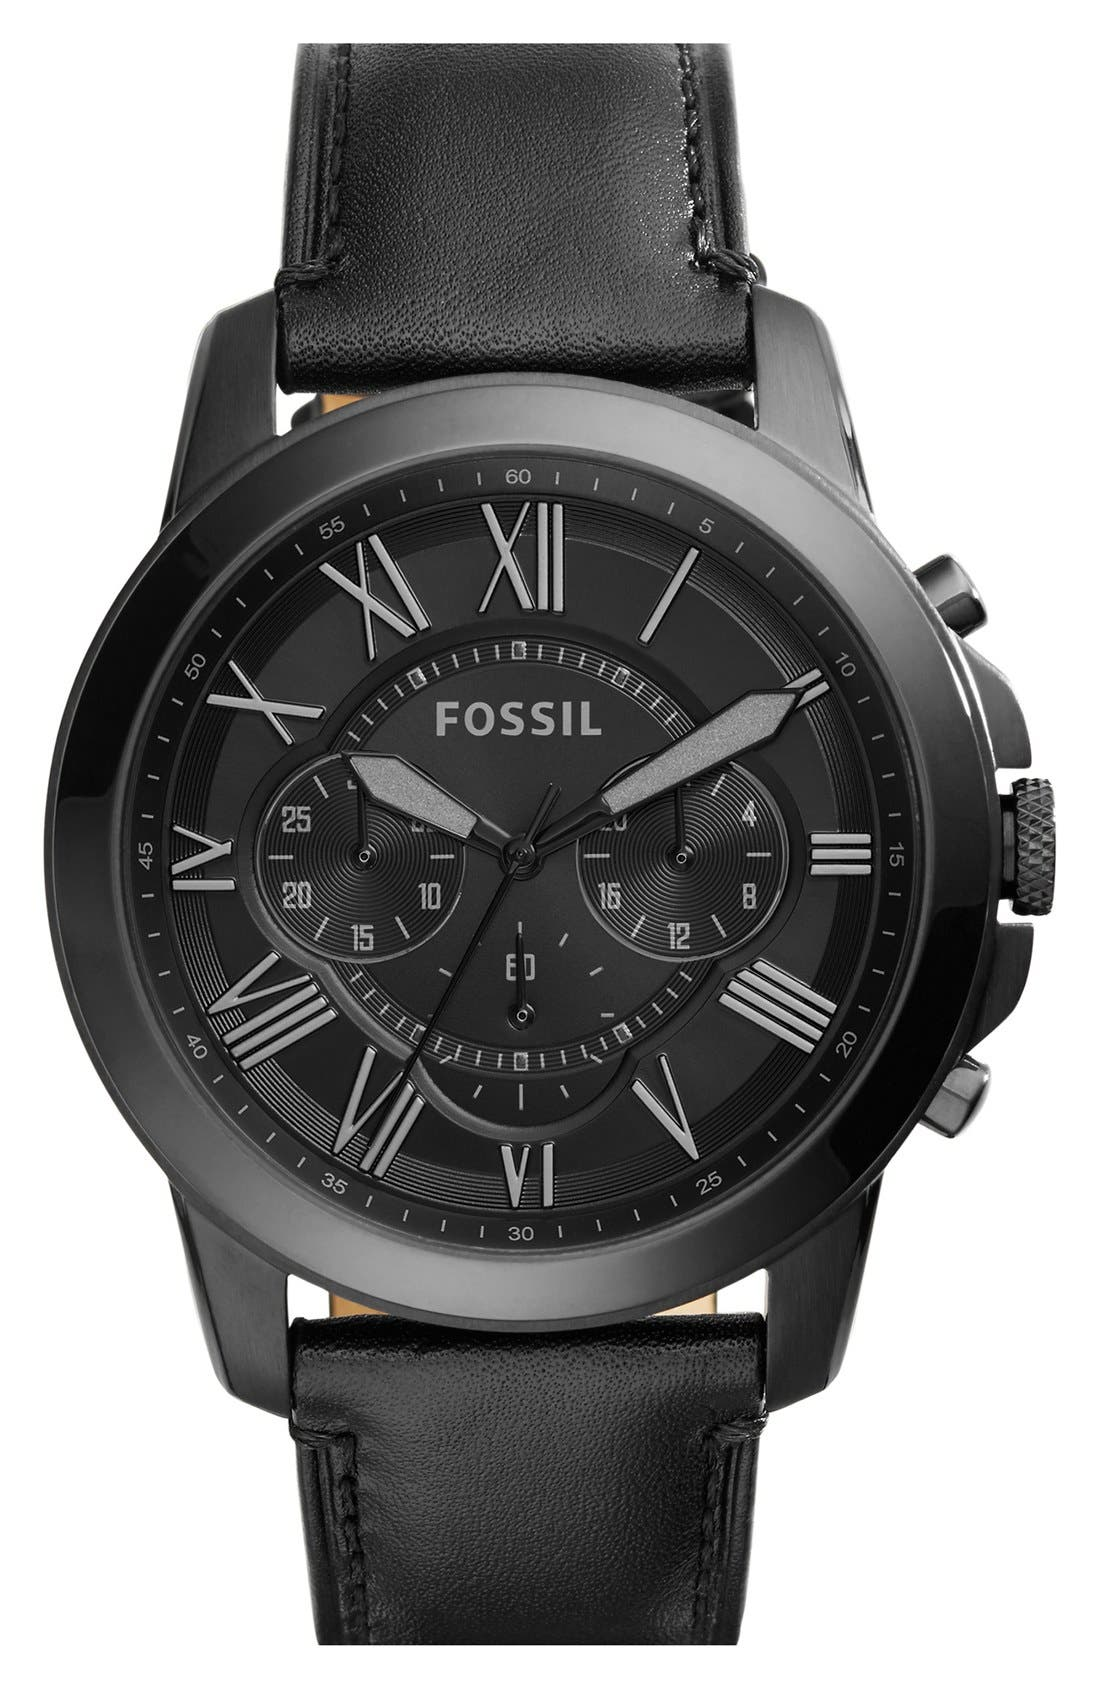 Main Image - Fossil 'Grant' Chronograph Leather Strap Watch, 45mm